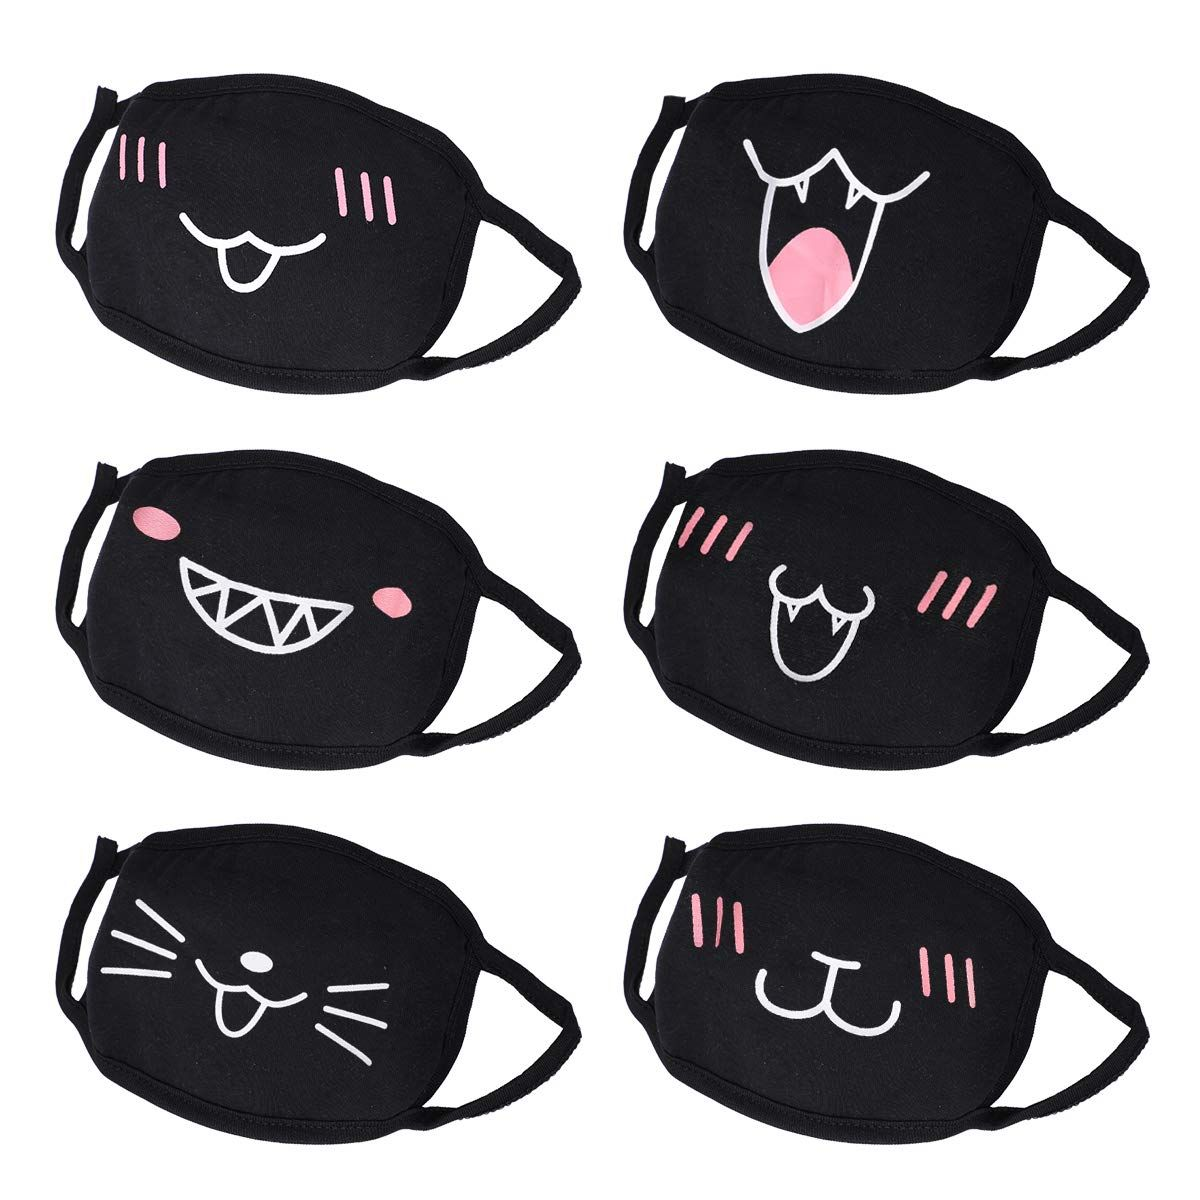 Mouth Mask Cotton Face Mask Aieve 6 Pack Unisex Anti Dust Mask